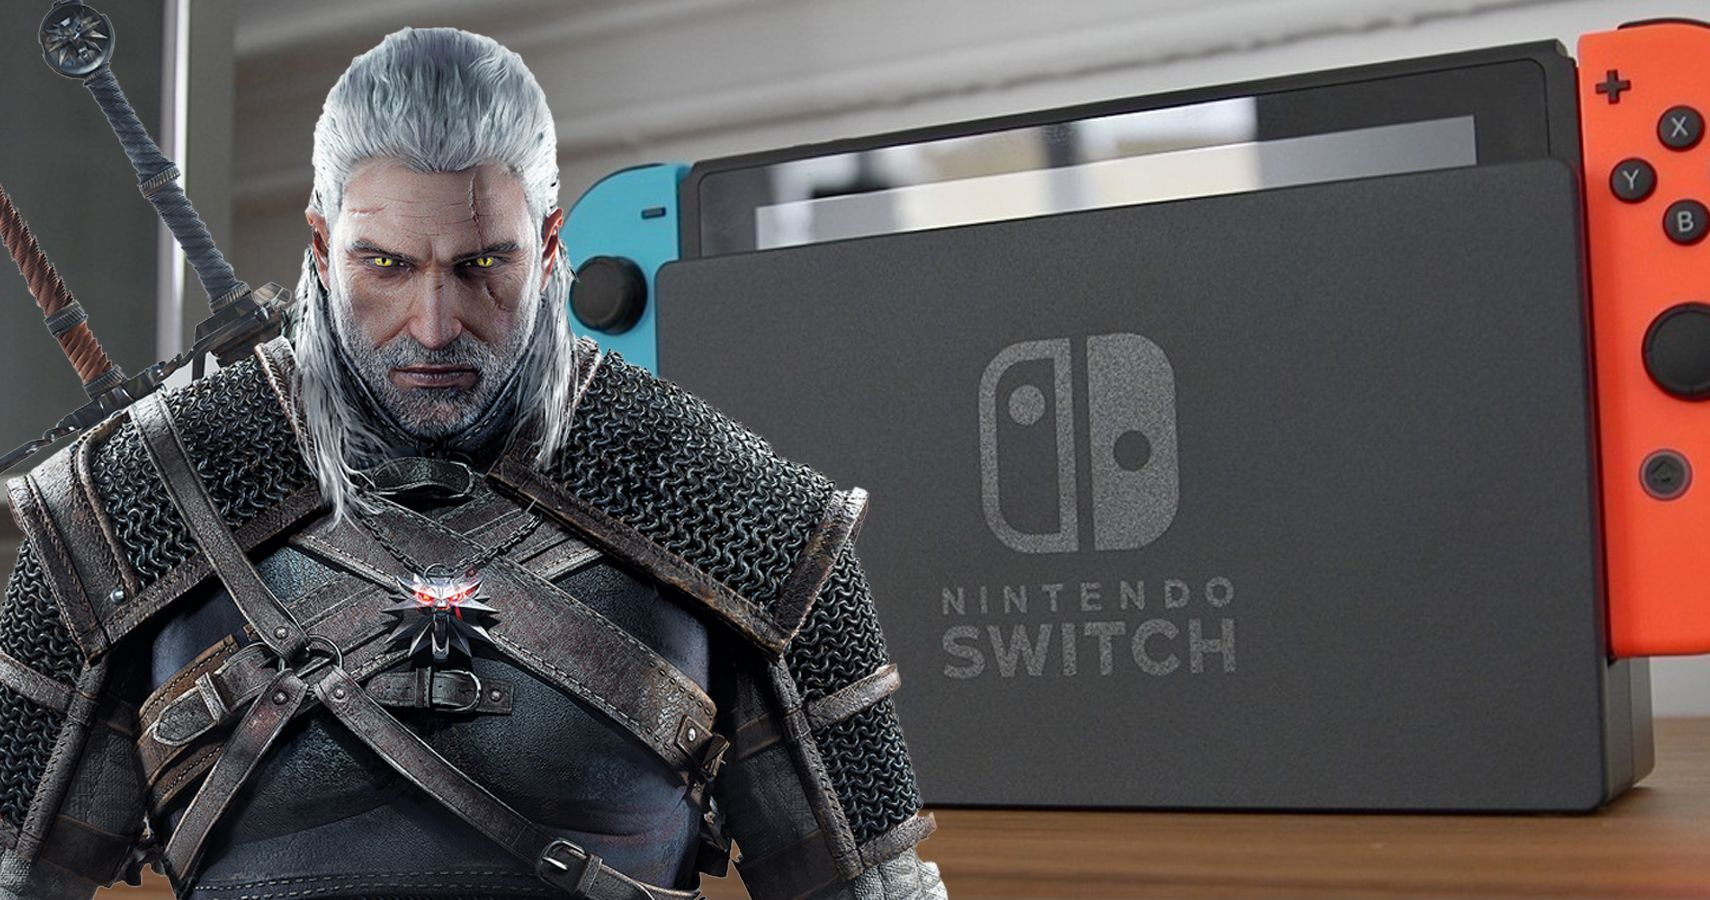 The Switcher: Geralt Of Rivia Is Coming To Nintendo Switch This Year With The Witcher 3 Complete Edition